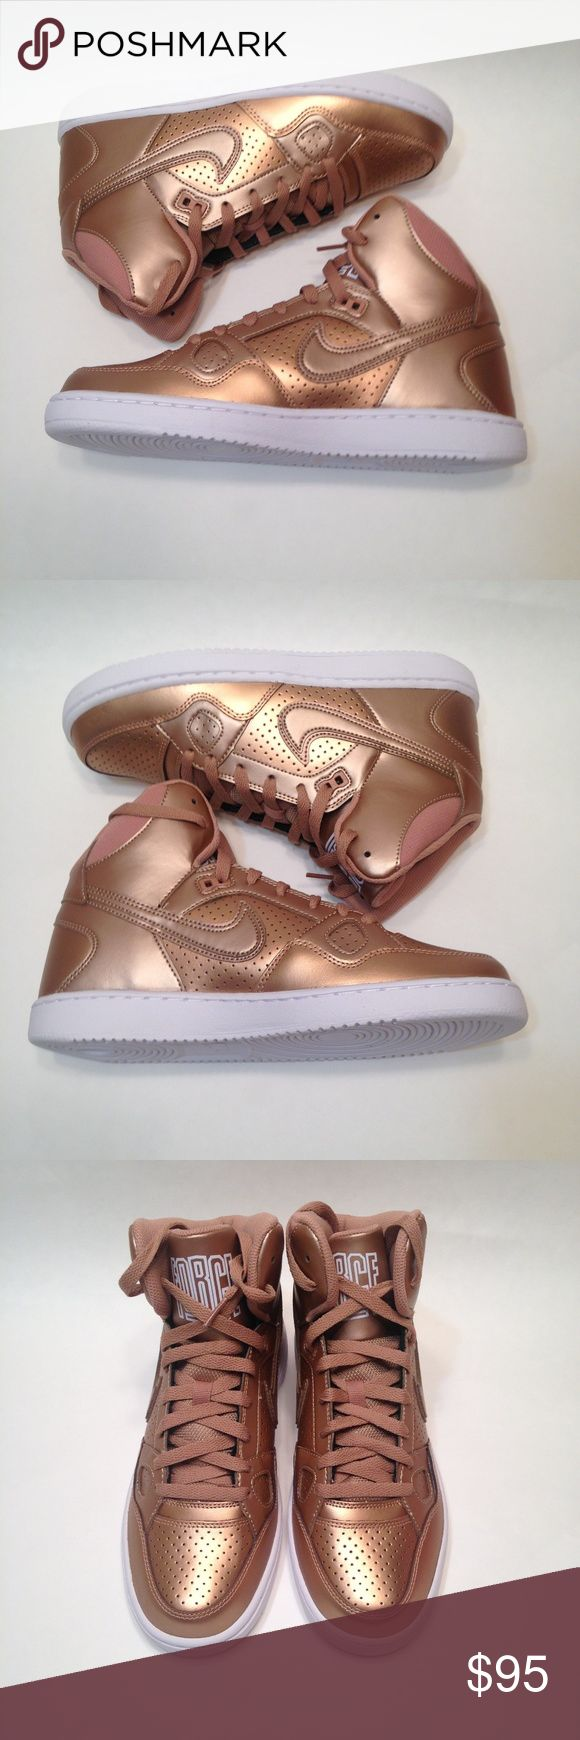 New womens Nike Son of force rose gold size 9 Brand new without the box womens Nike mid top Son of Force Rose gold with white sole size 9. Nike Shoes Sneakers